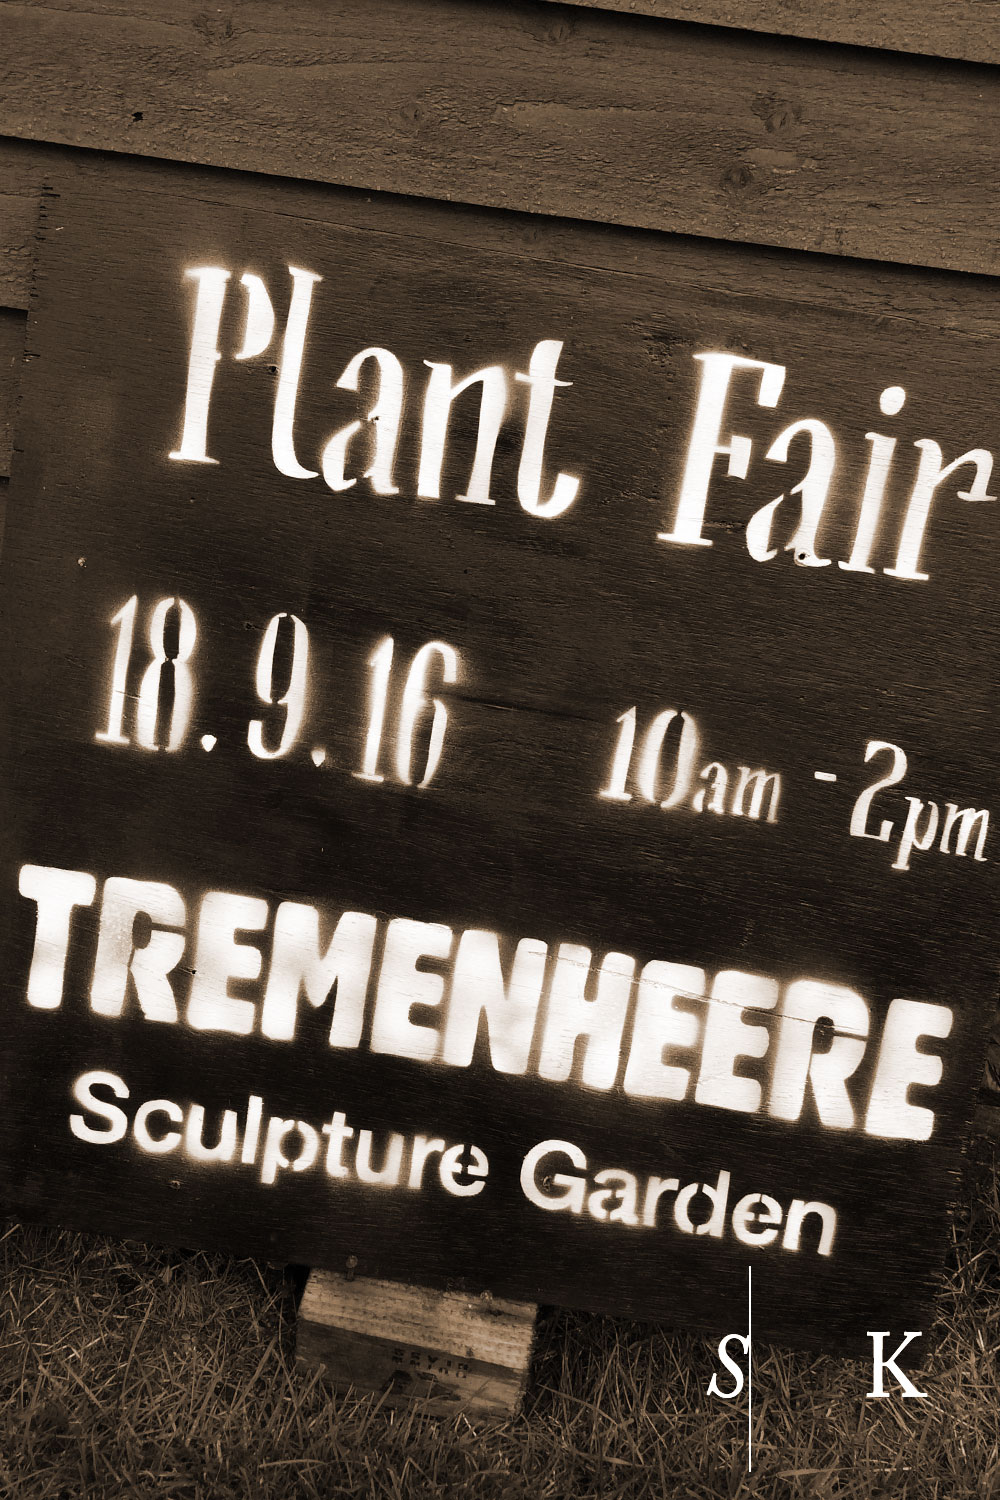 Tremenheere Plant Fair 2016 Sign in Cornwall in September